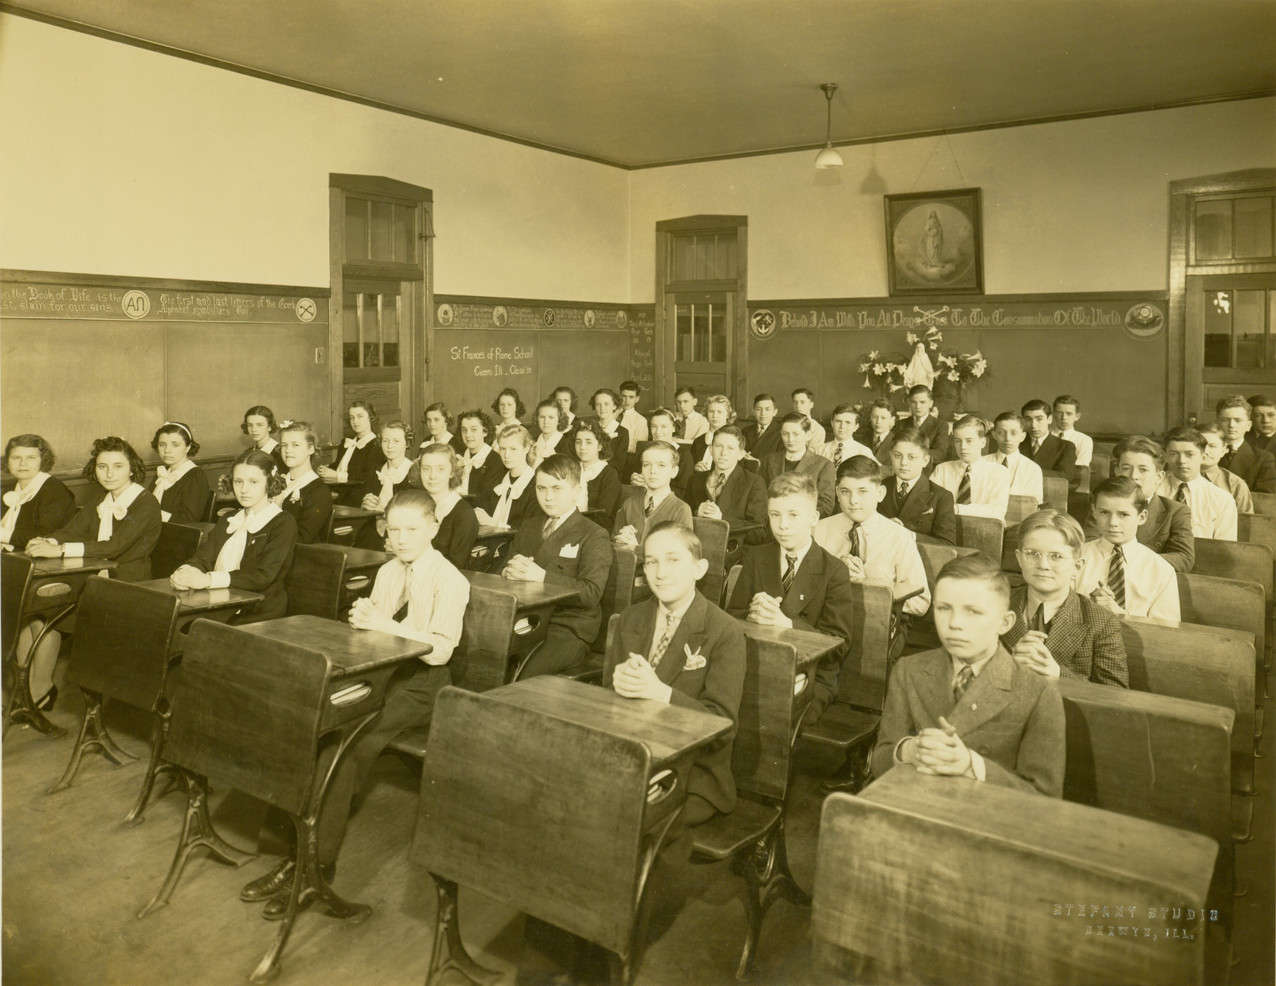 The Sisters opened several schools in the Midwest in the early decades of the 20th century, including those in Jefferson City, Taos, Old Mines, and St. Louis, Missouri, and in Cicero (Chicago), Illinois. Classroom, St. Francis of Rome, Cicero, 1939.